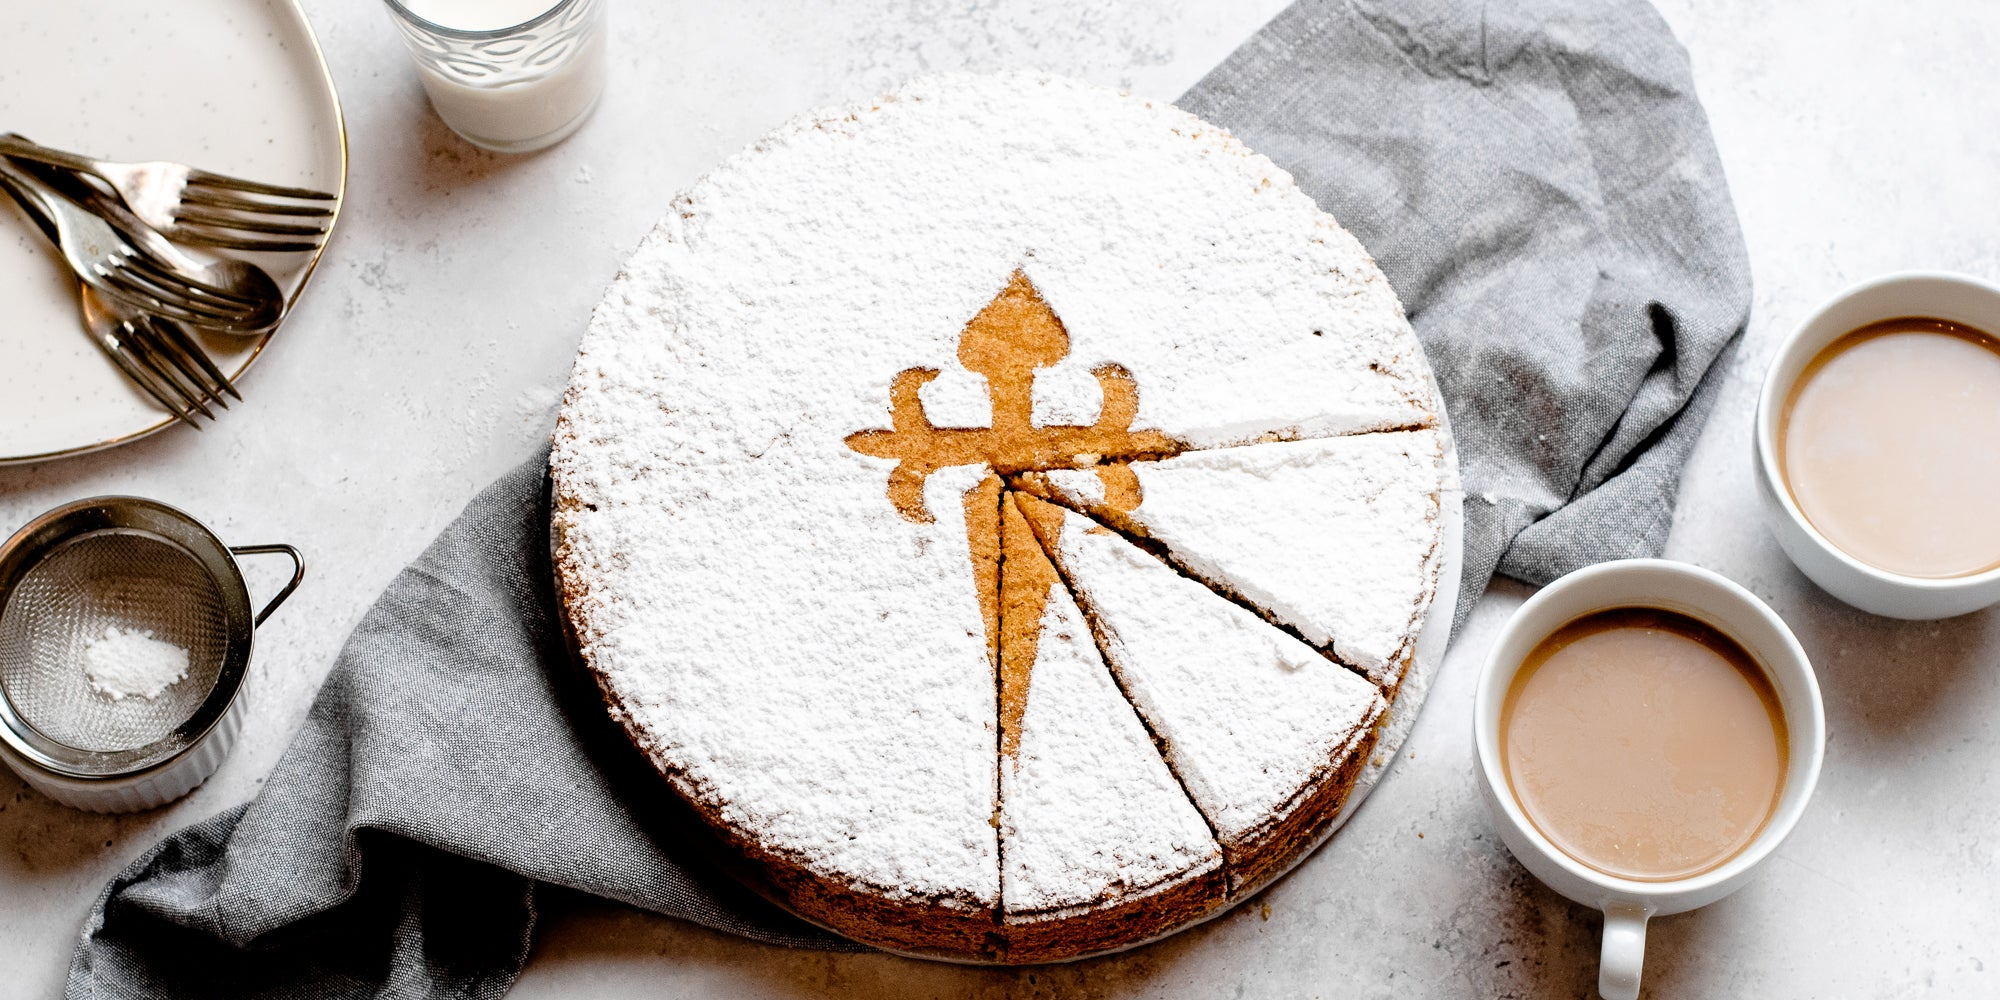 Tarta de Santiago with three slices cut out of it, served on a linen cloth, next to two cups of tea and cutlery ready to serve